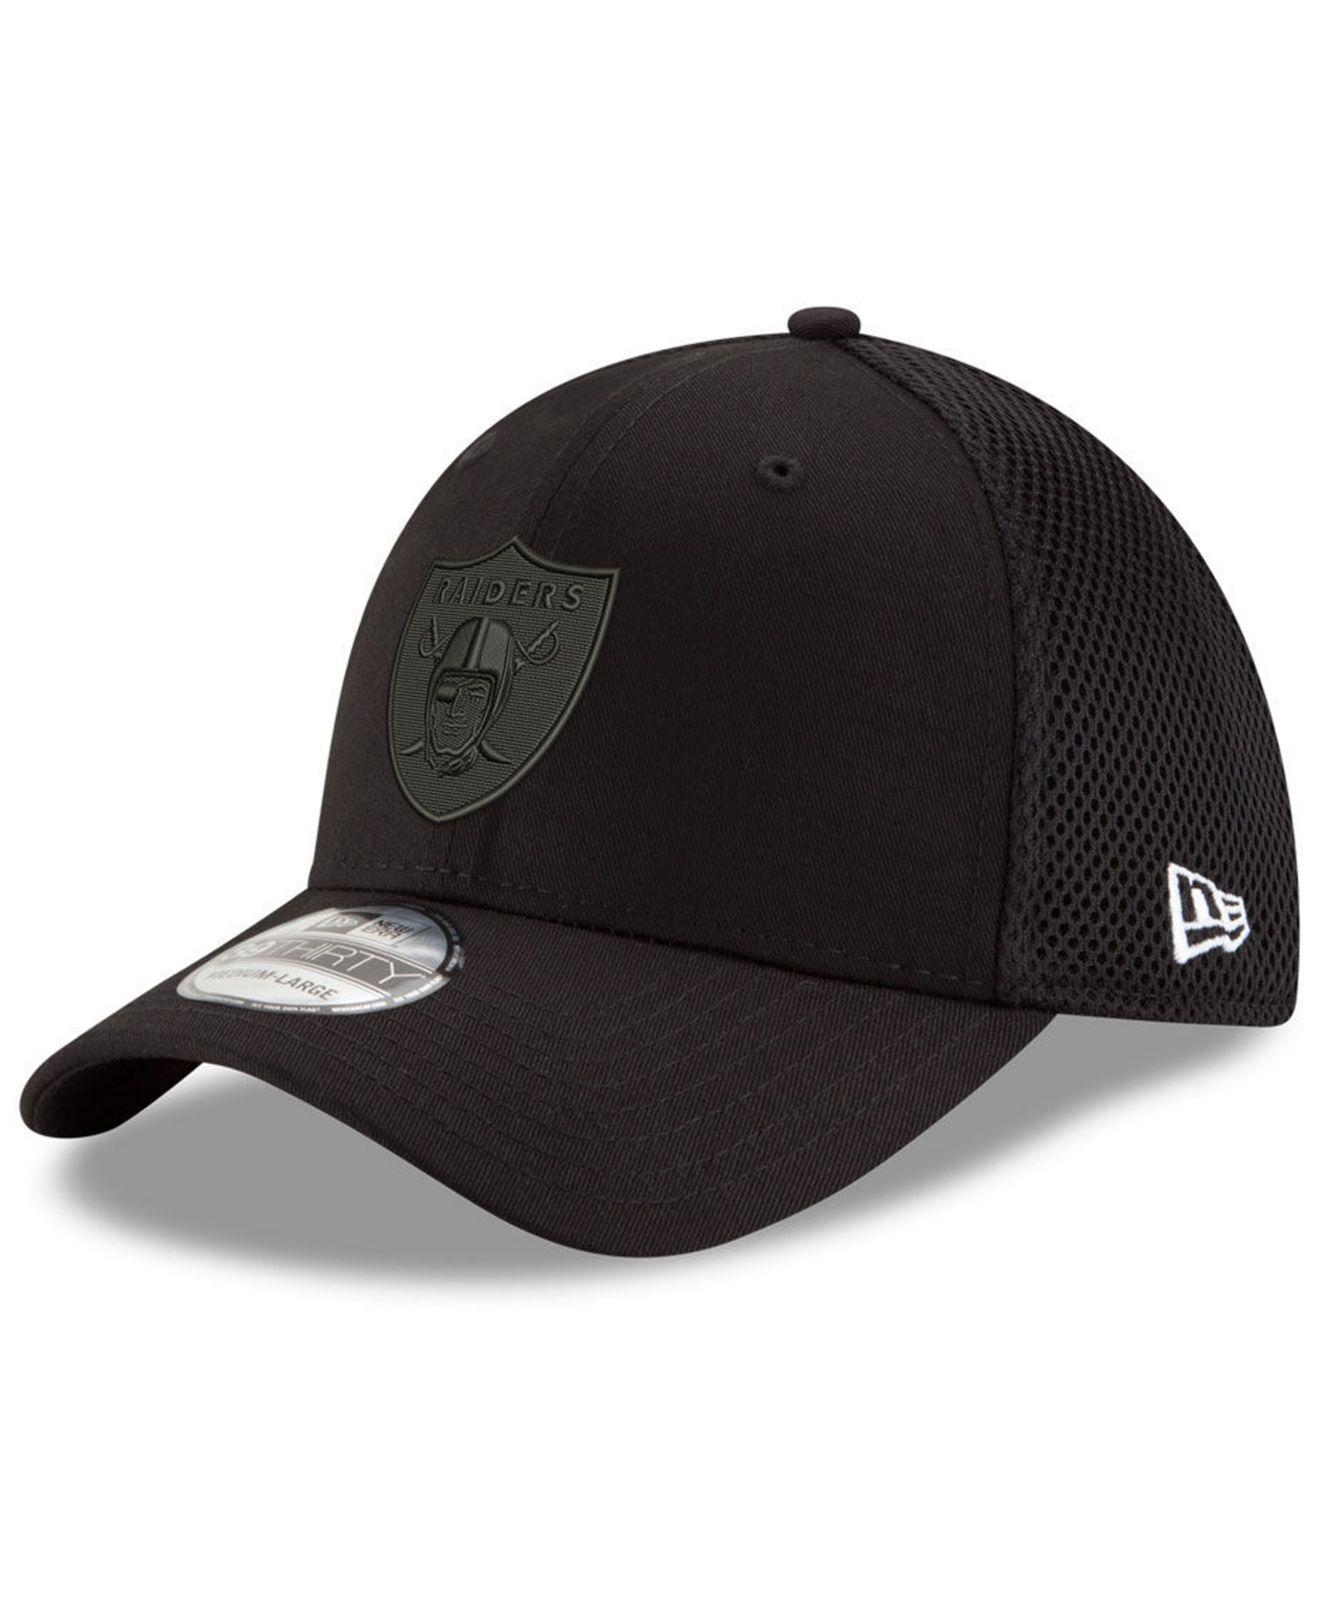 Lyst - KTZ Oakland Raiders Black white Neo Mb 39thirty Cap in Black ... 3caedbabcb7e